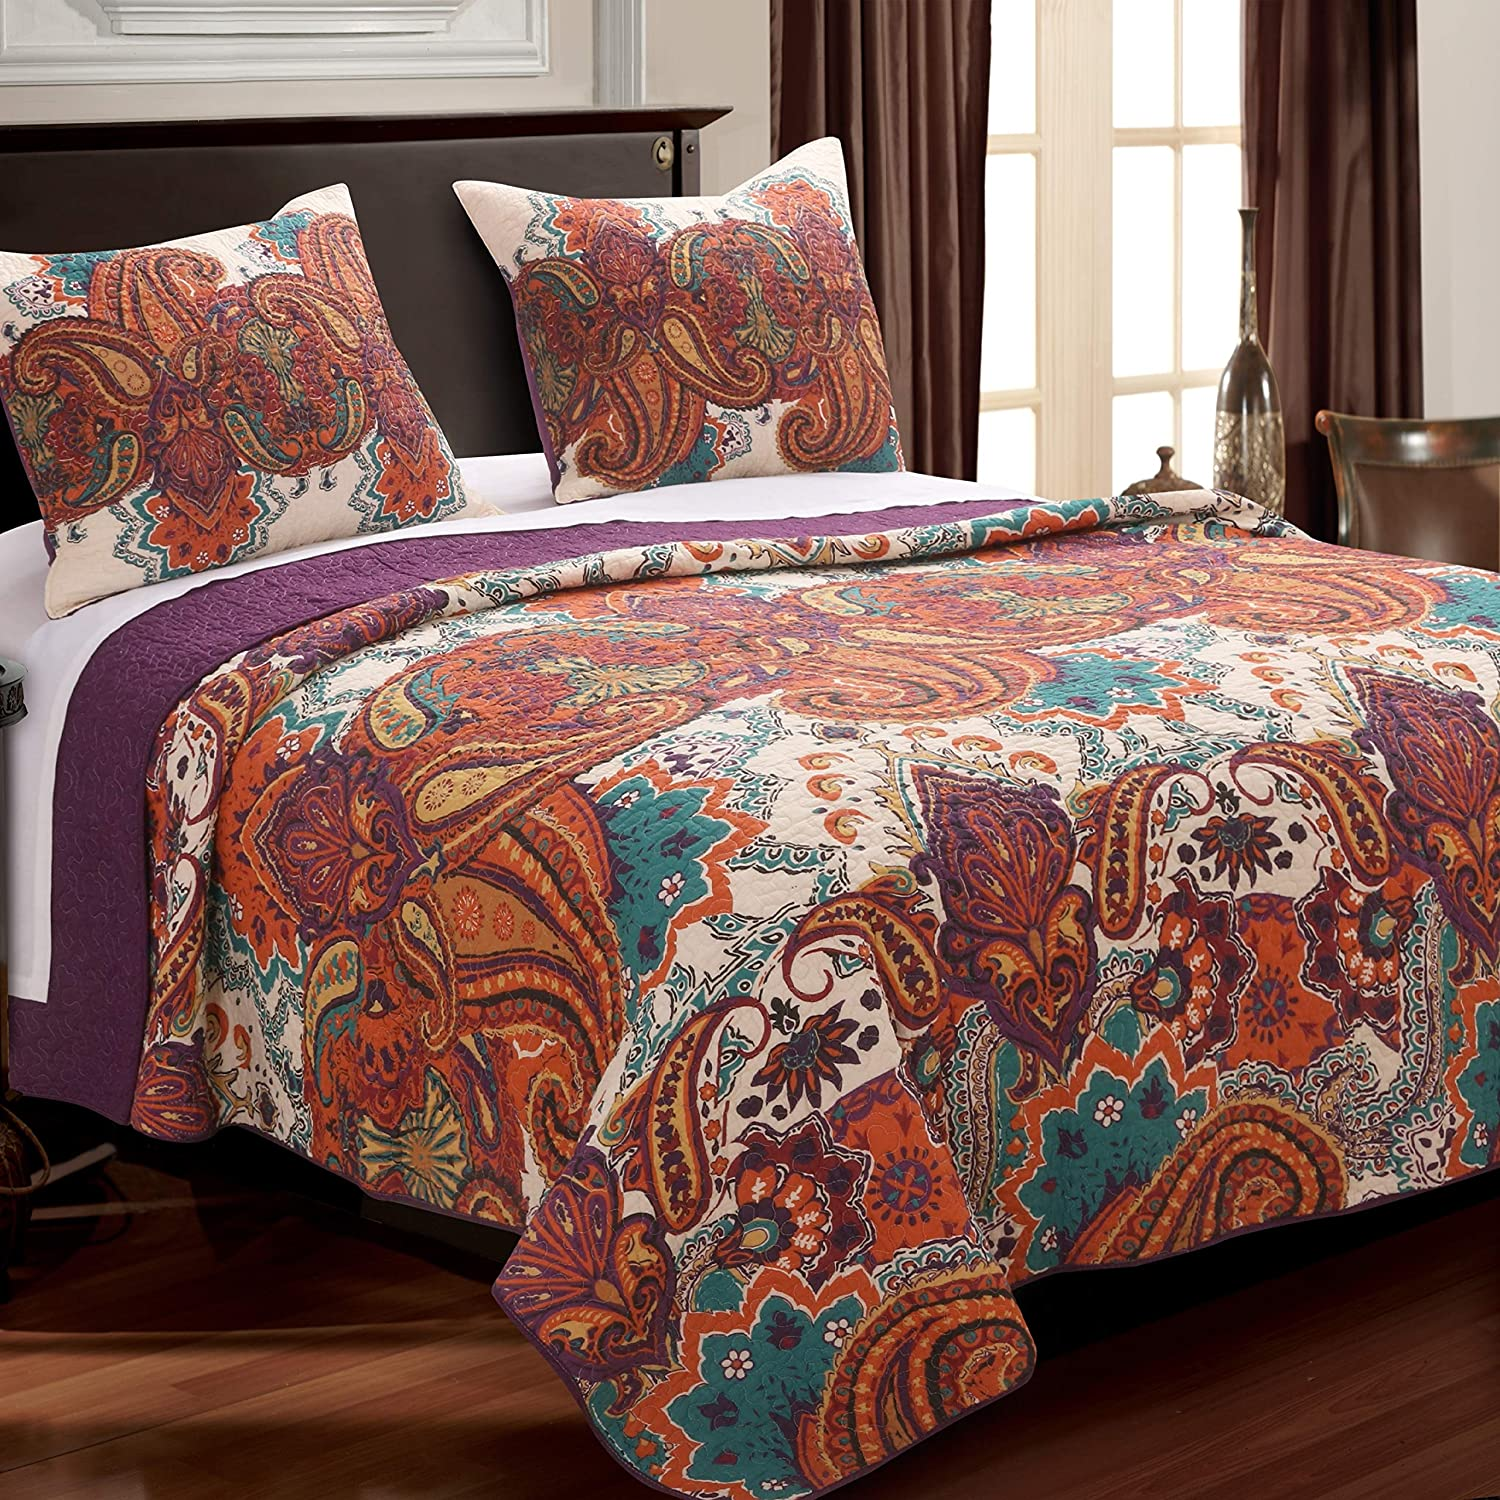 Greenland Home Nirvana Quilt Set, Full/Queen, Spice